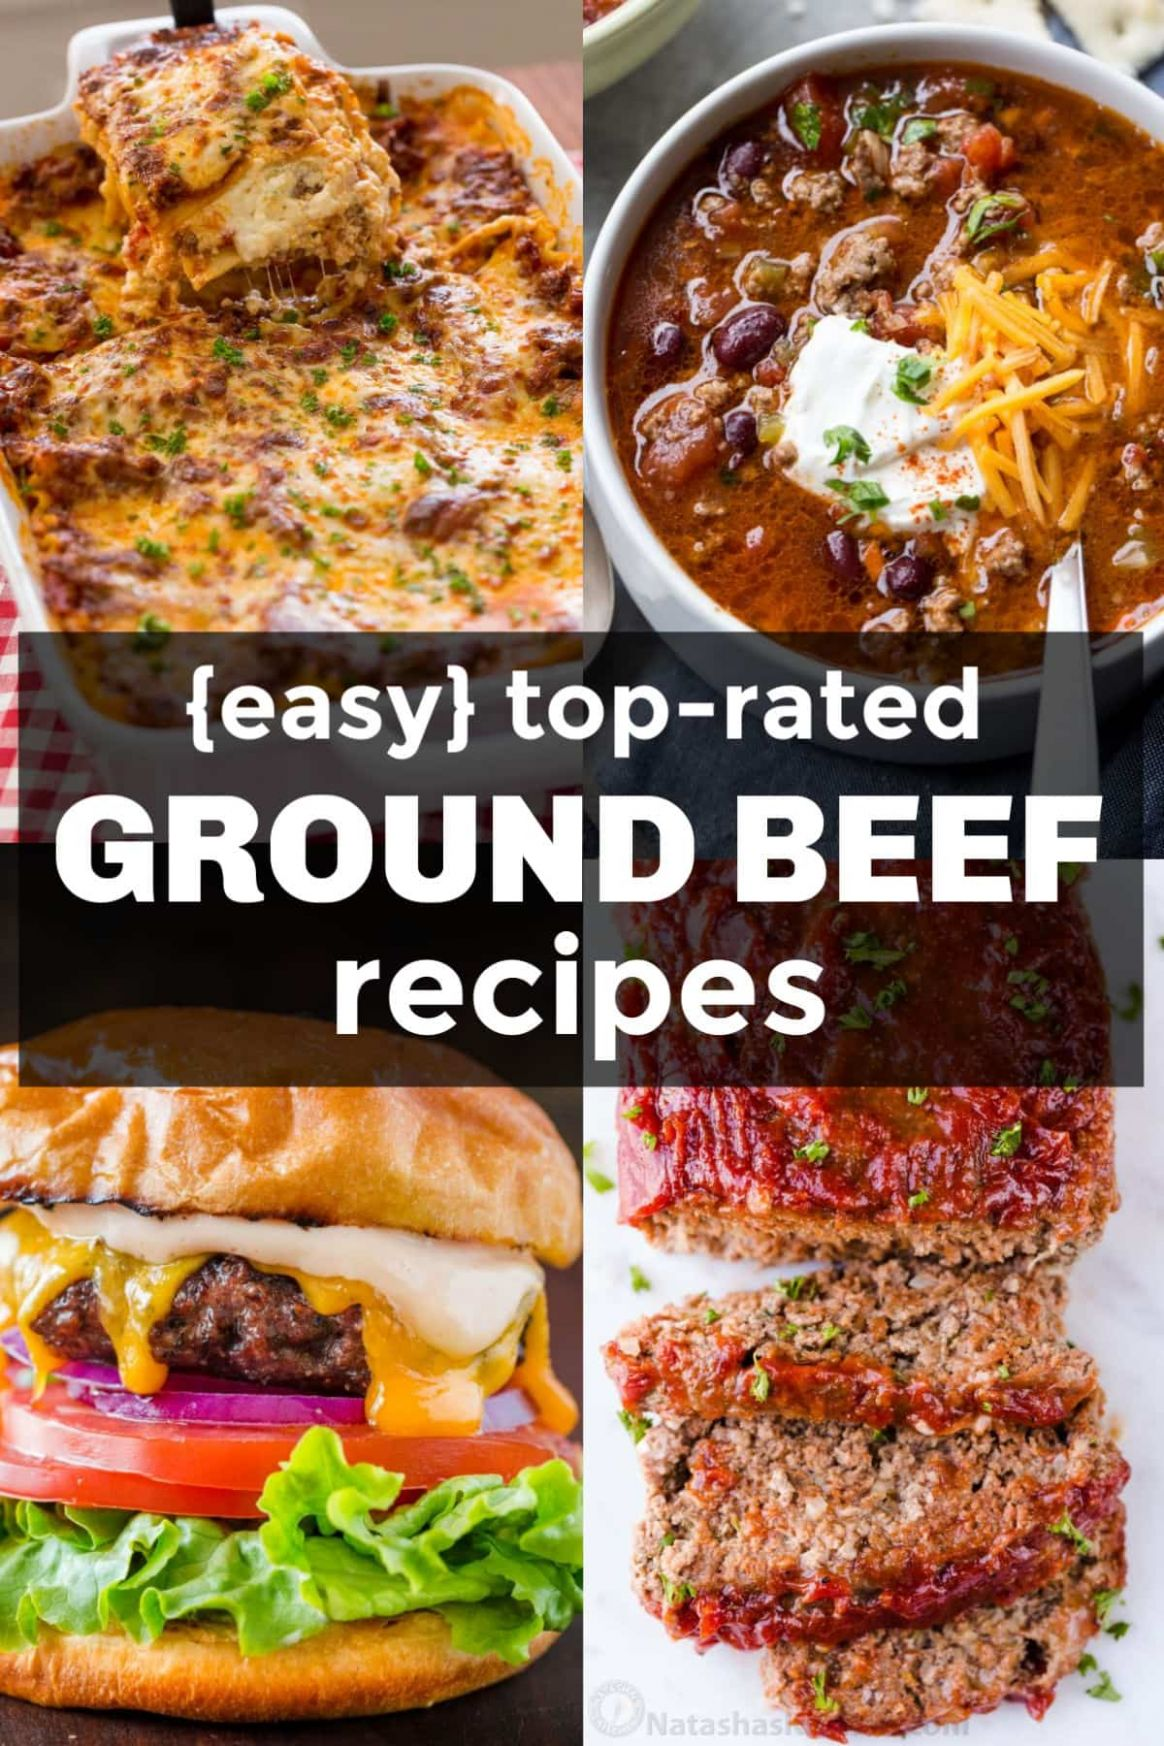 How to Cook Ground Beef for Ground Beef Recipes - Easy Recipes Made With Hamburger